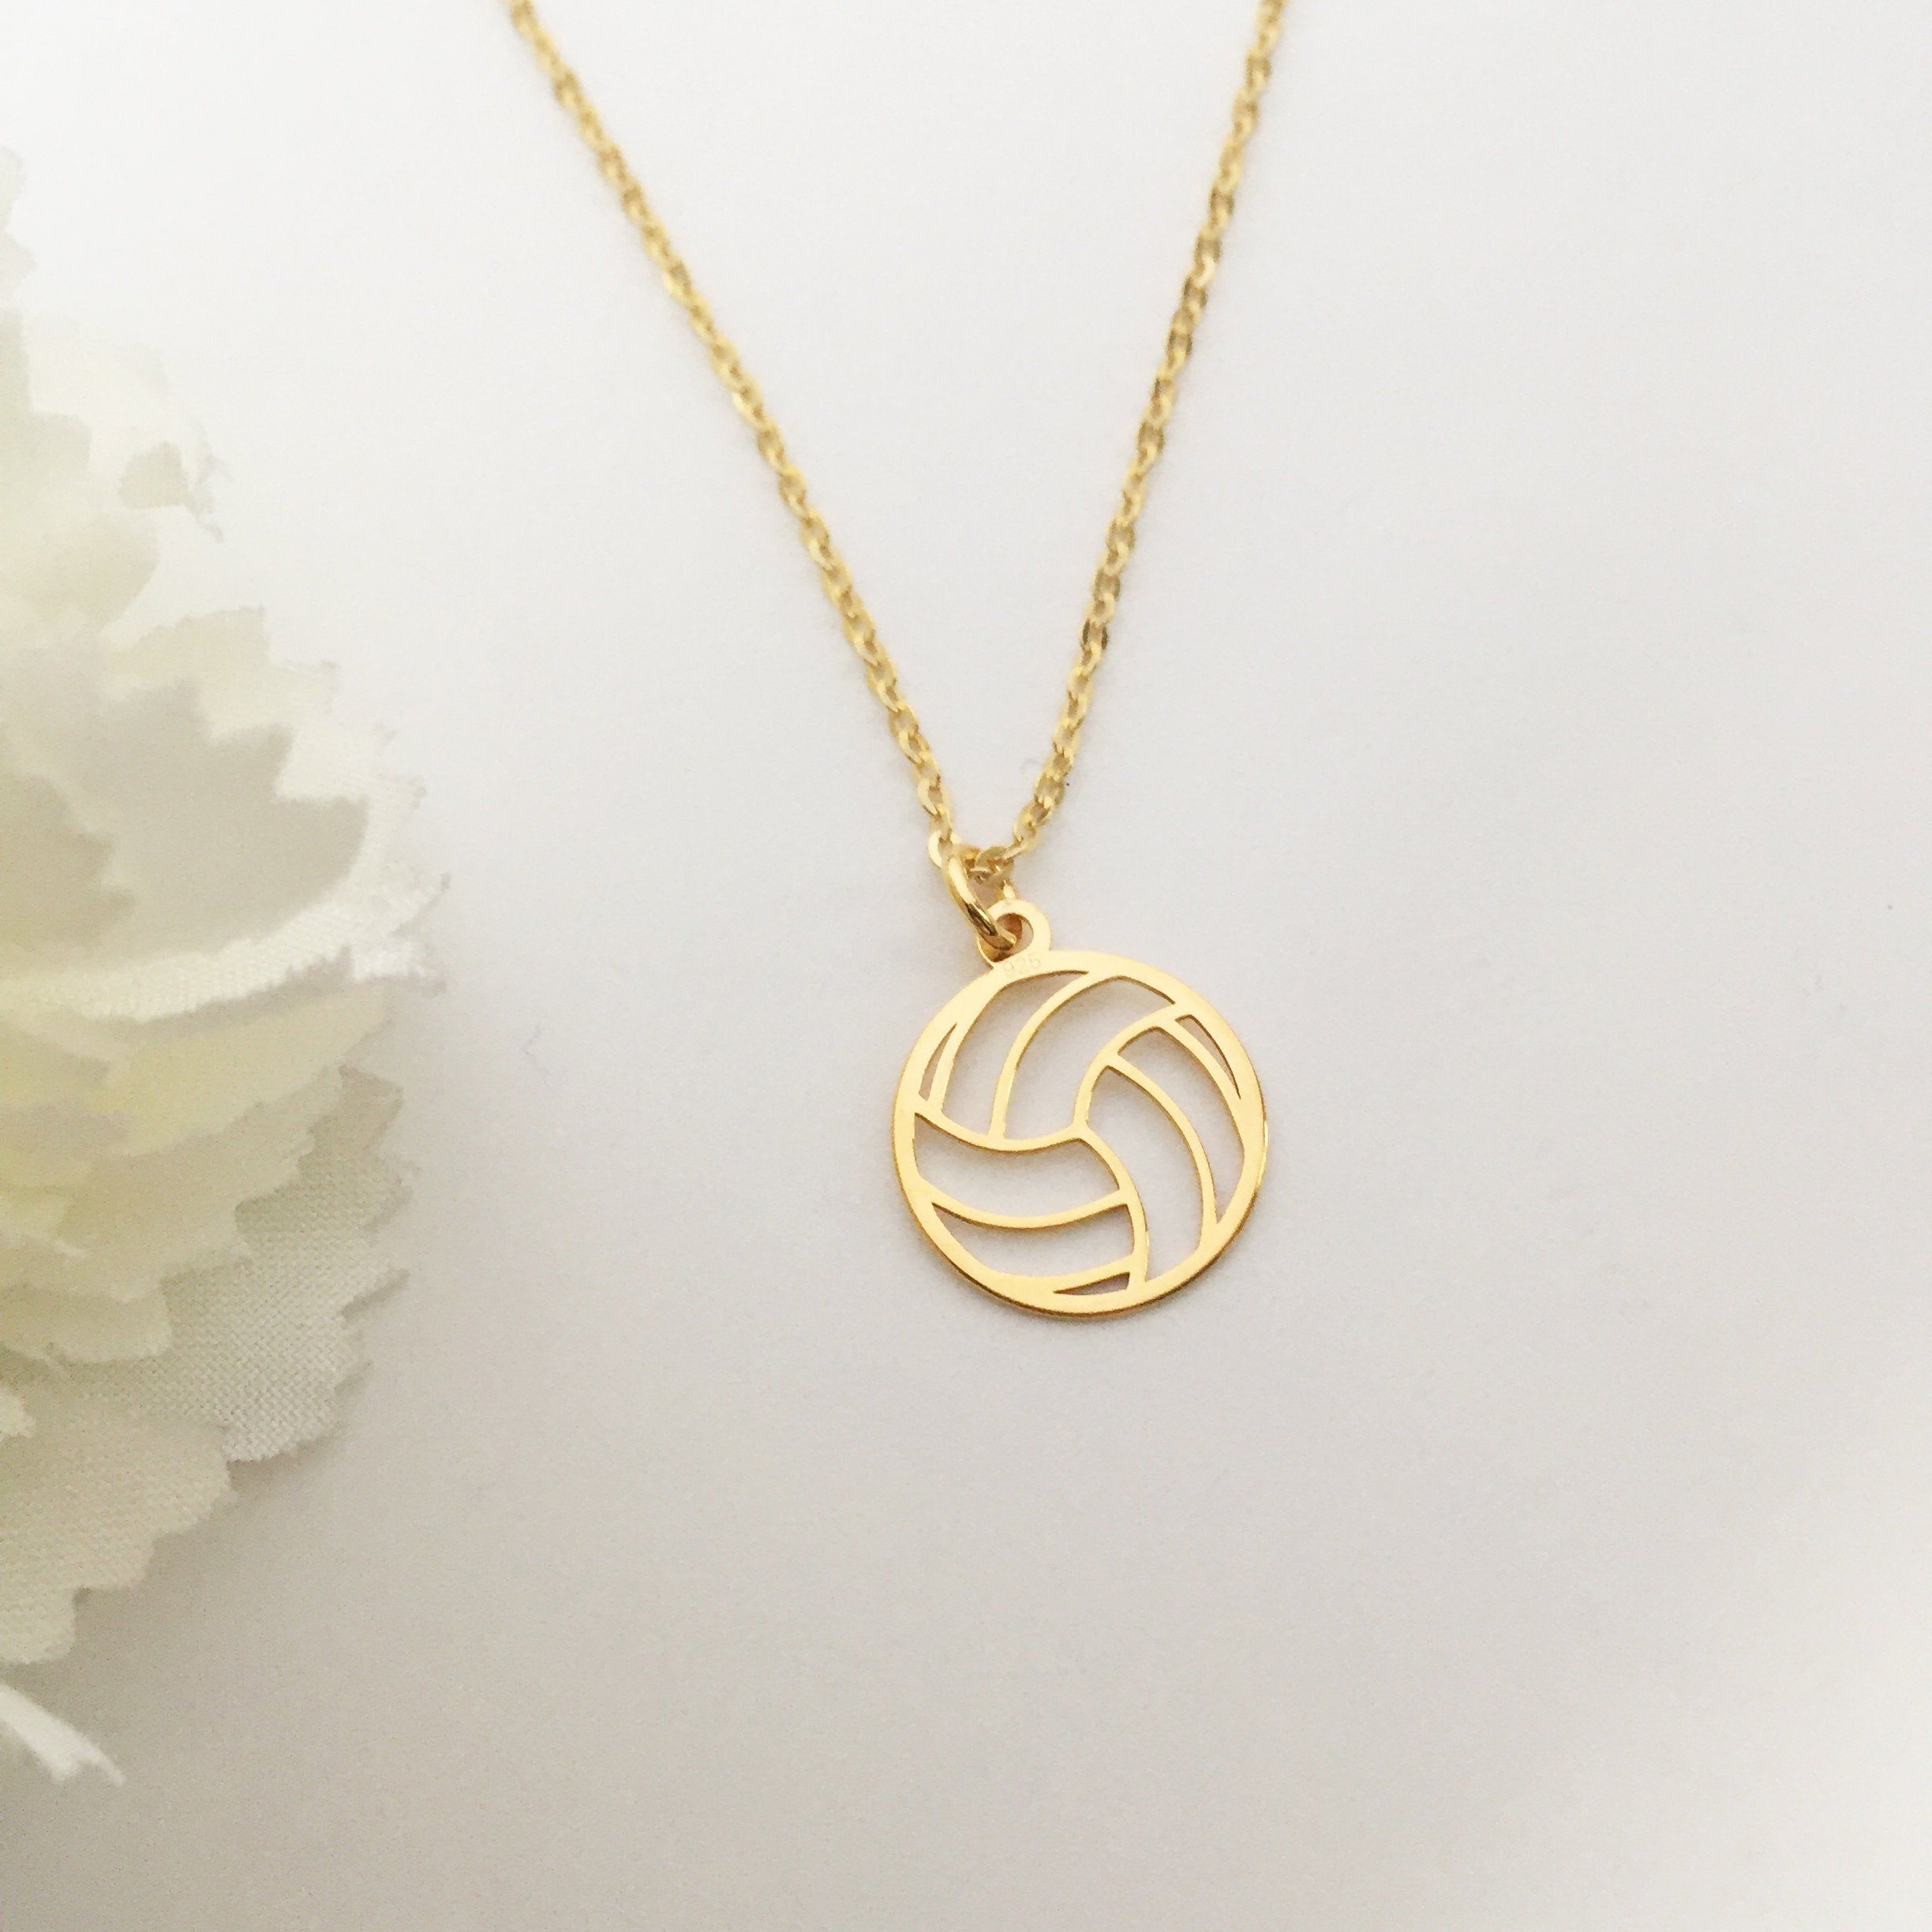 Volleyball Necklace Ball Necklace Gold Volleyball Etsy Volleyball Necklace Volleyball Jewelry Gold Necklace